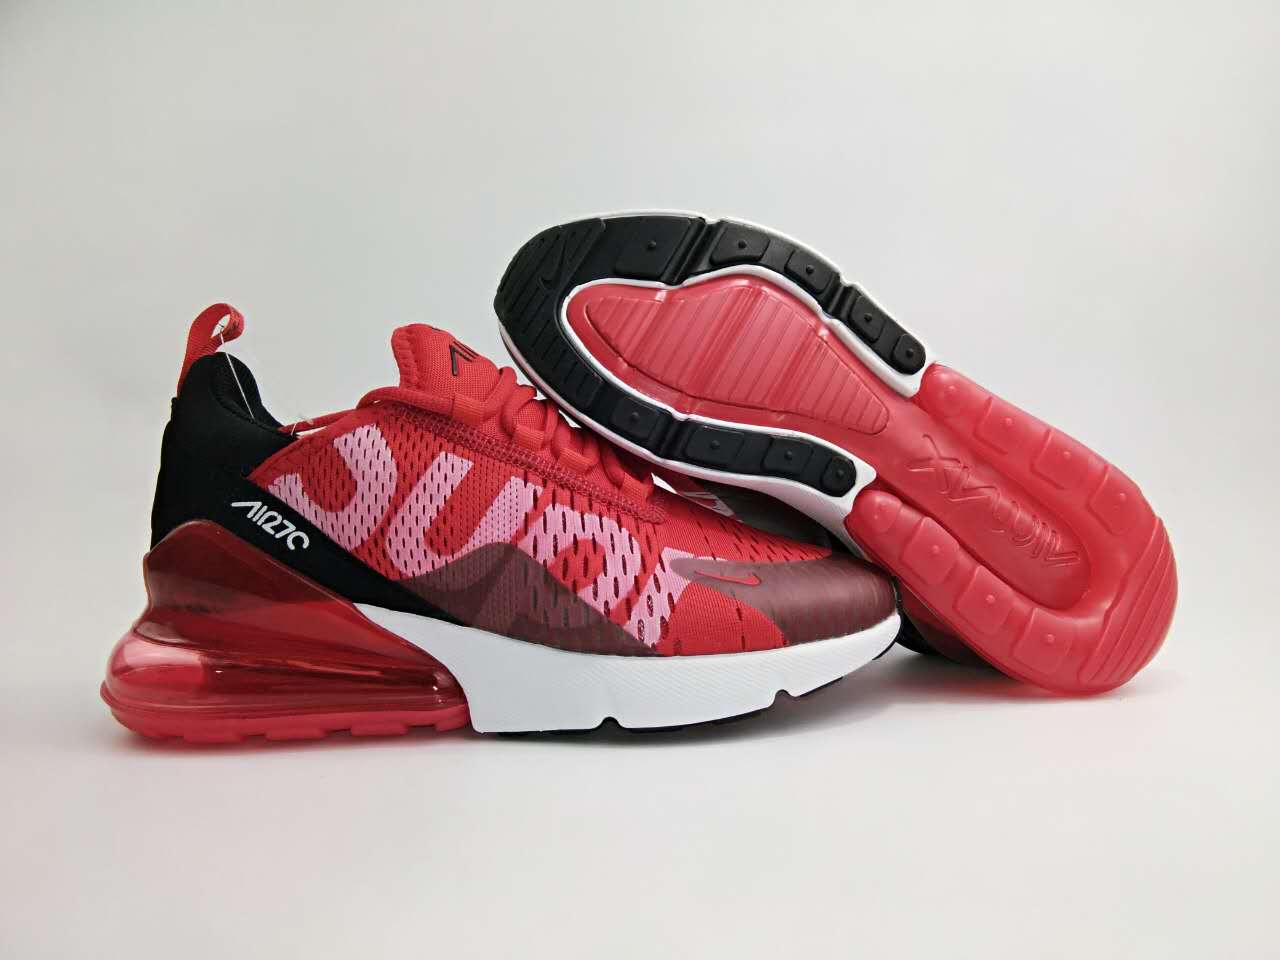 New Nike Air Max Flair 270 Nano Red Black White Shoes